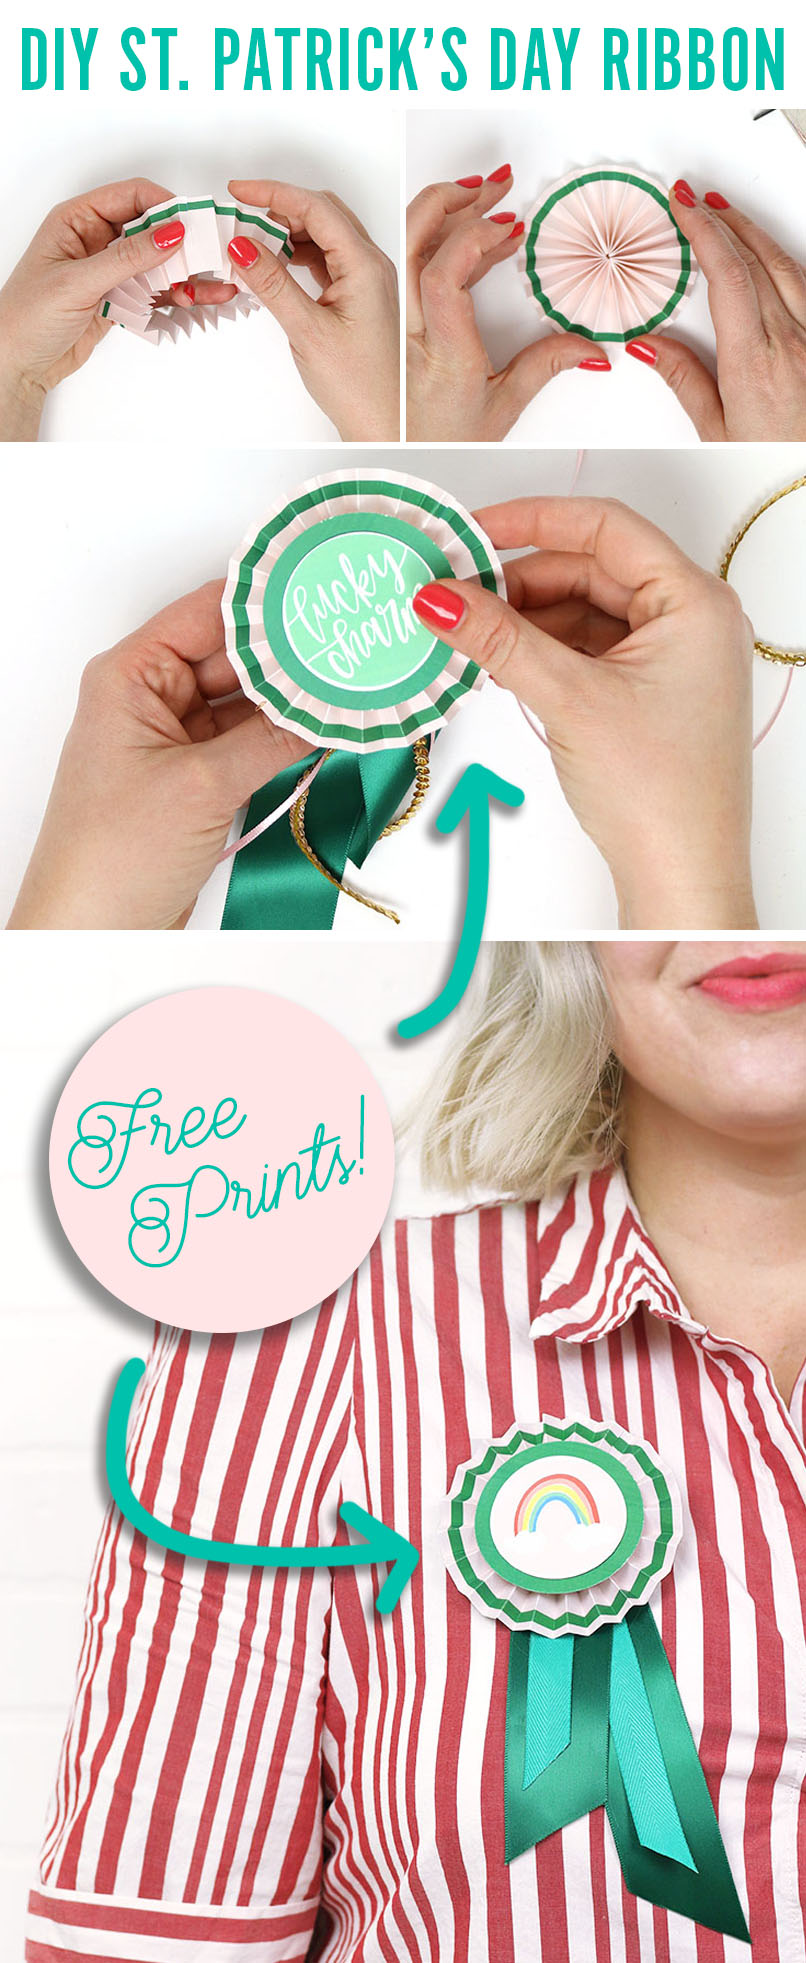 Free Printable St. Patrick's Day Pinch Proof Ribbons - Make your own paper rosette pins for St. Patrick's Day!